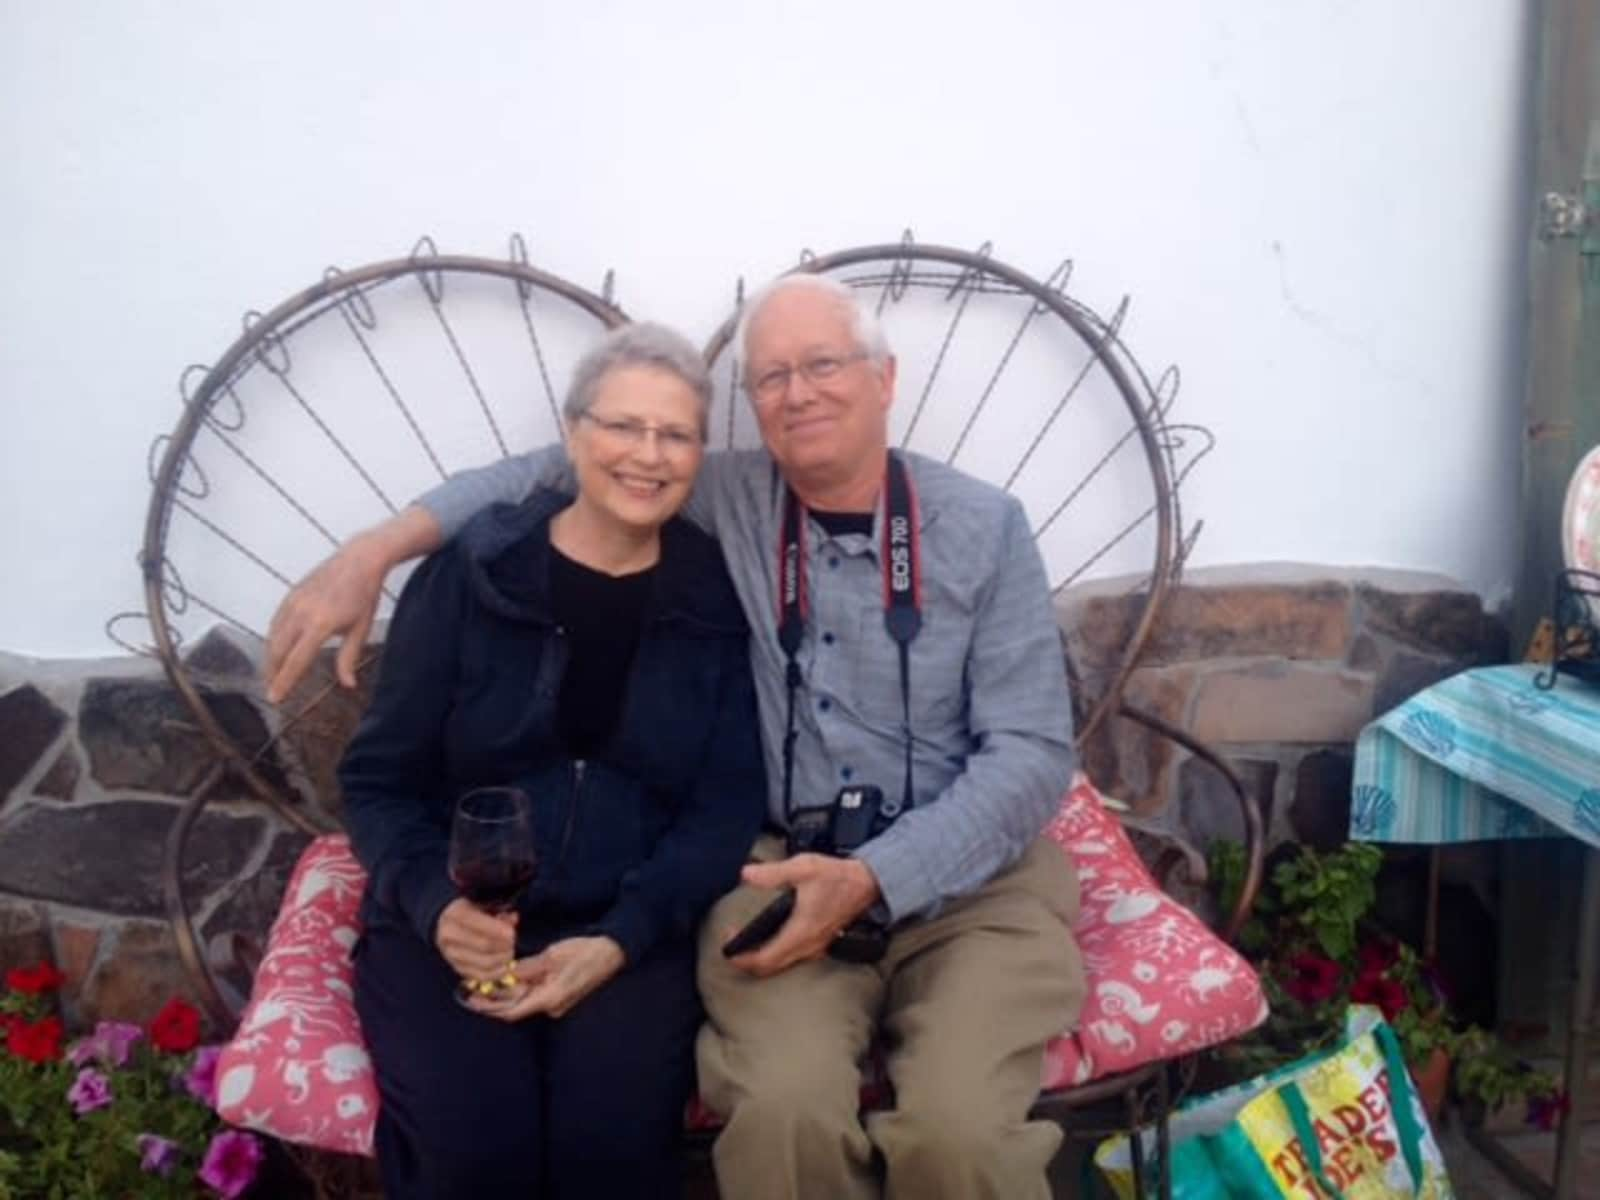 Nick & Dawna from Seattle, Washington, United States